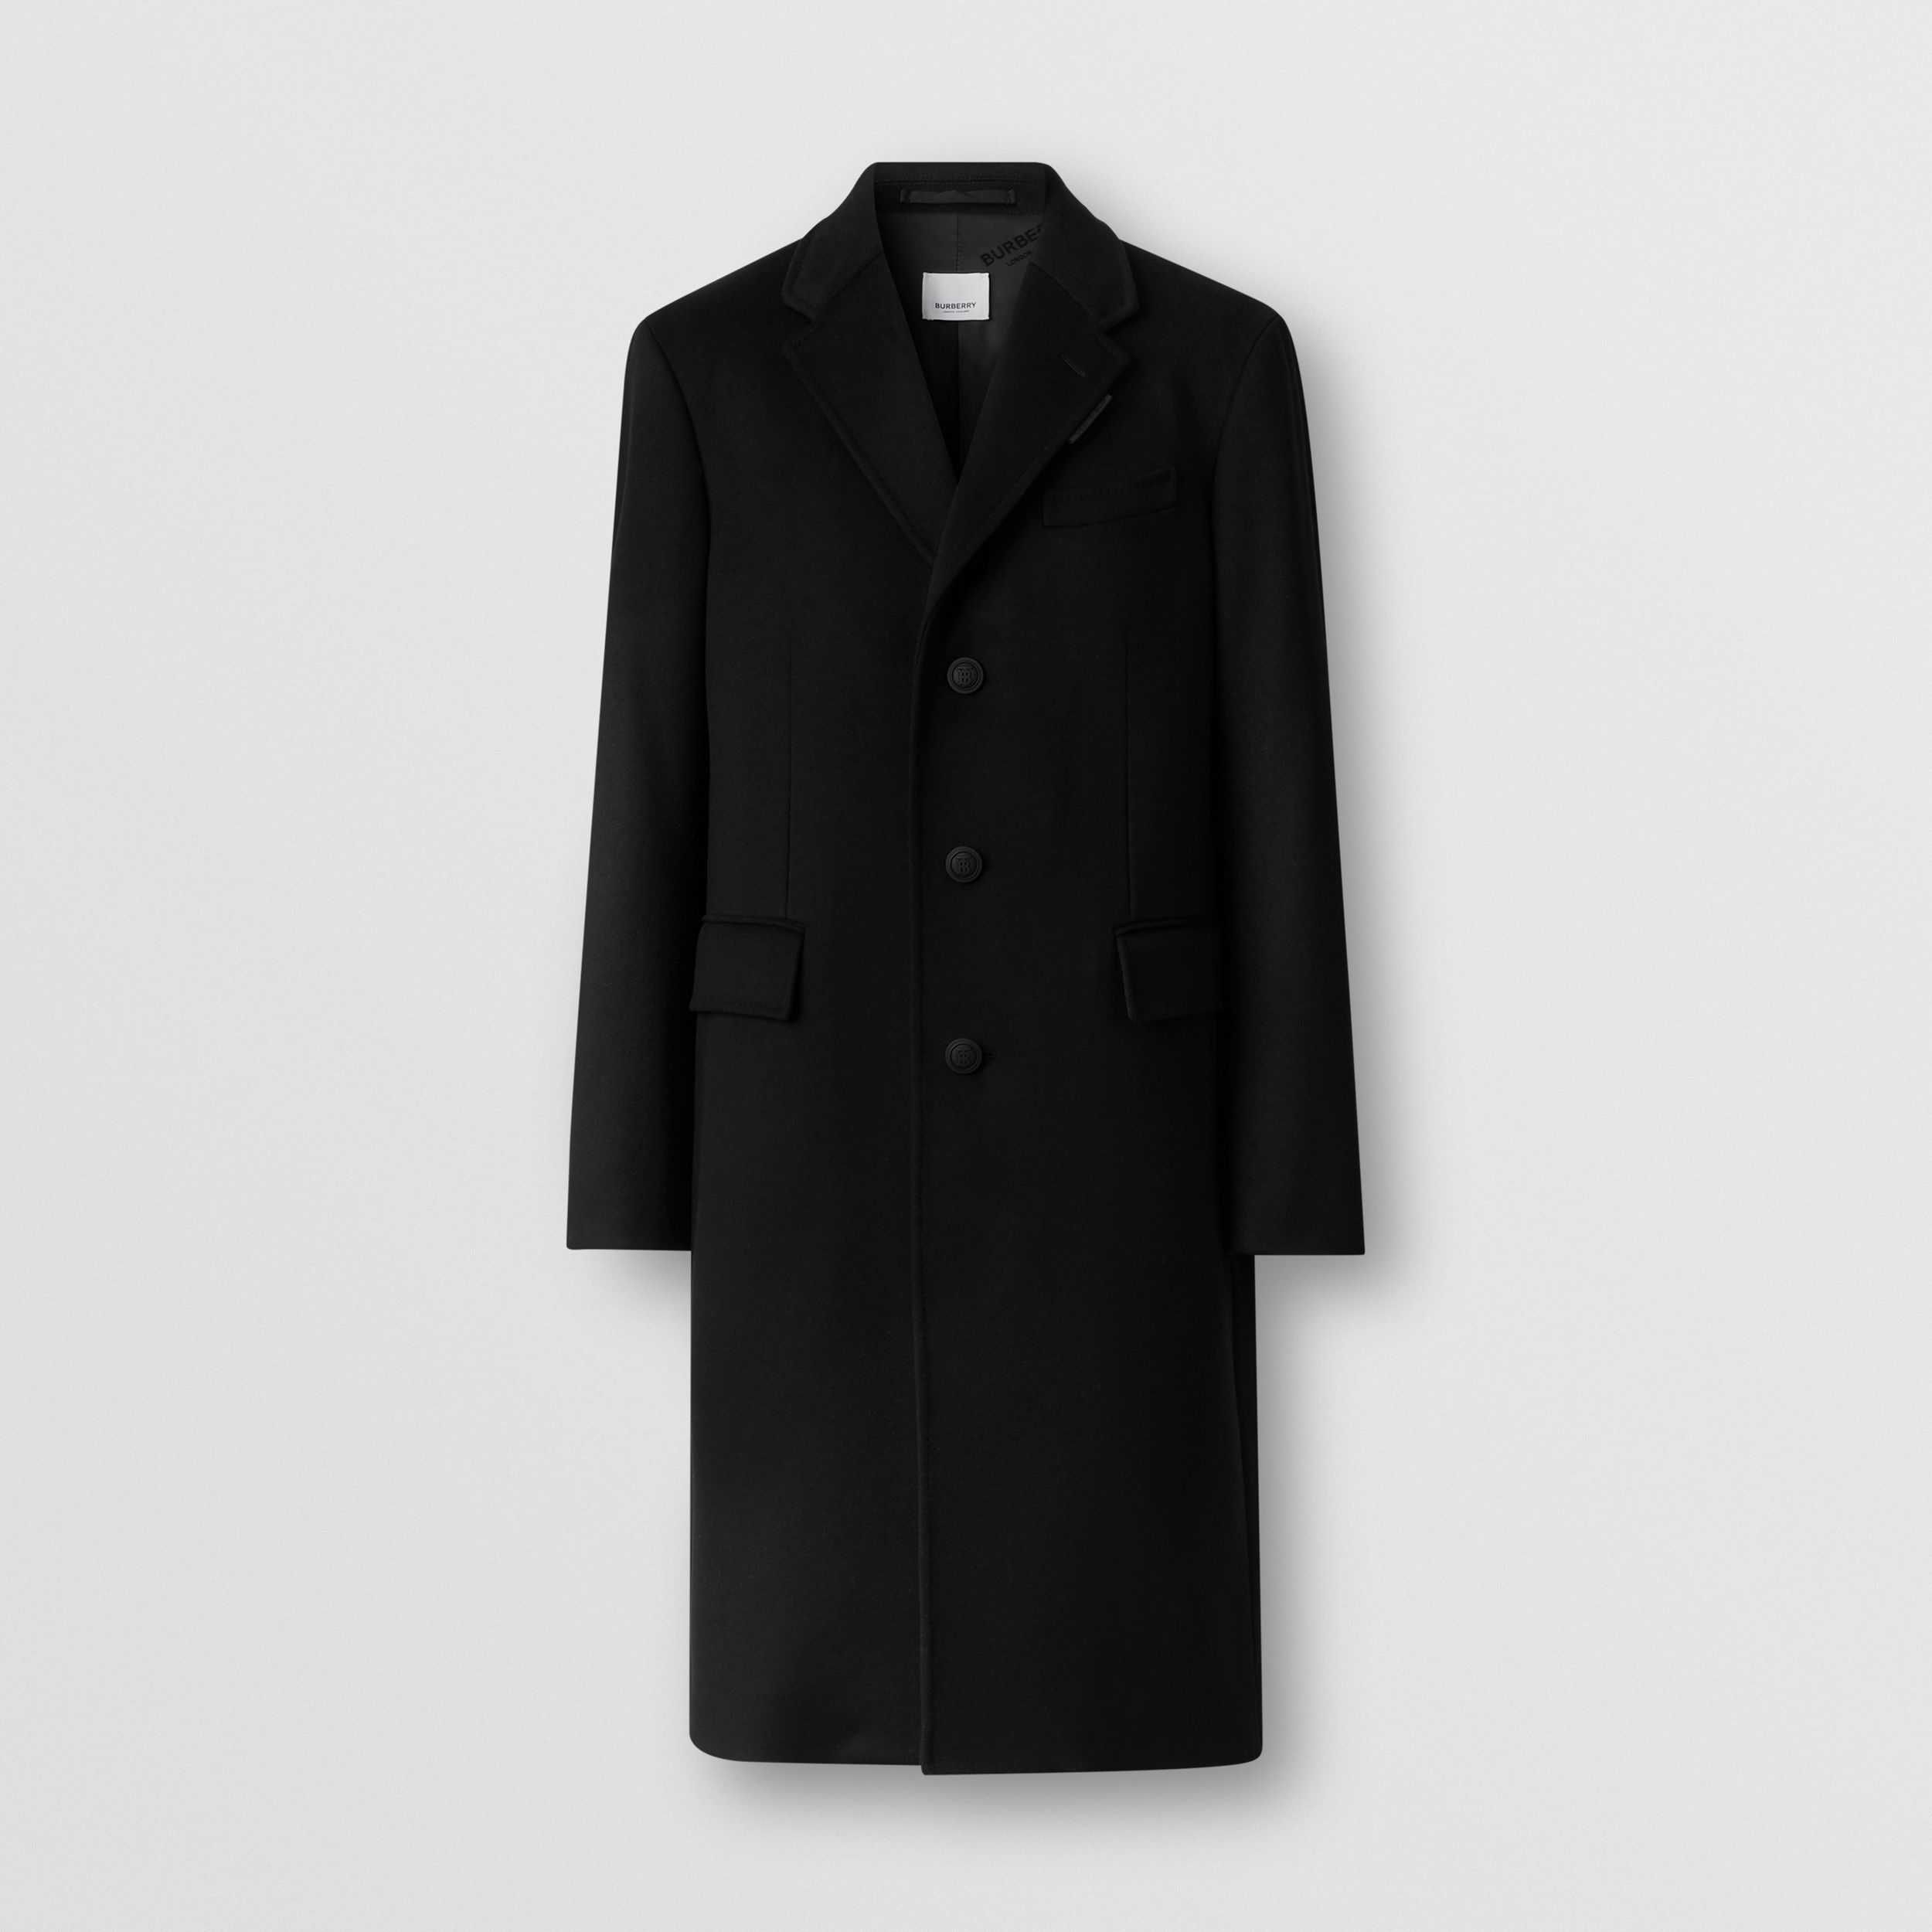 Button Detail Wool Cashmere Tailored Coat in Black - Men | Burberry - 4